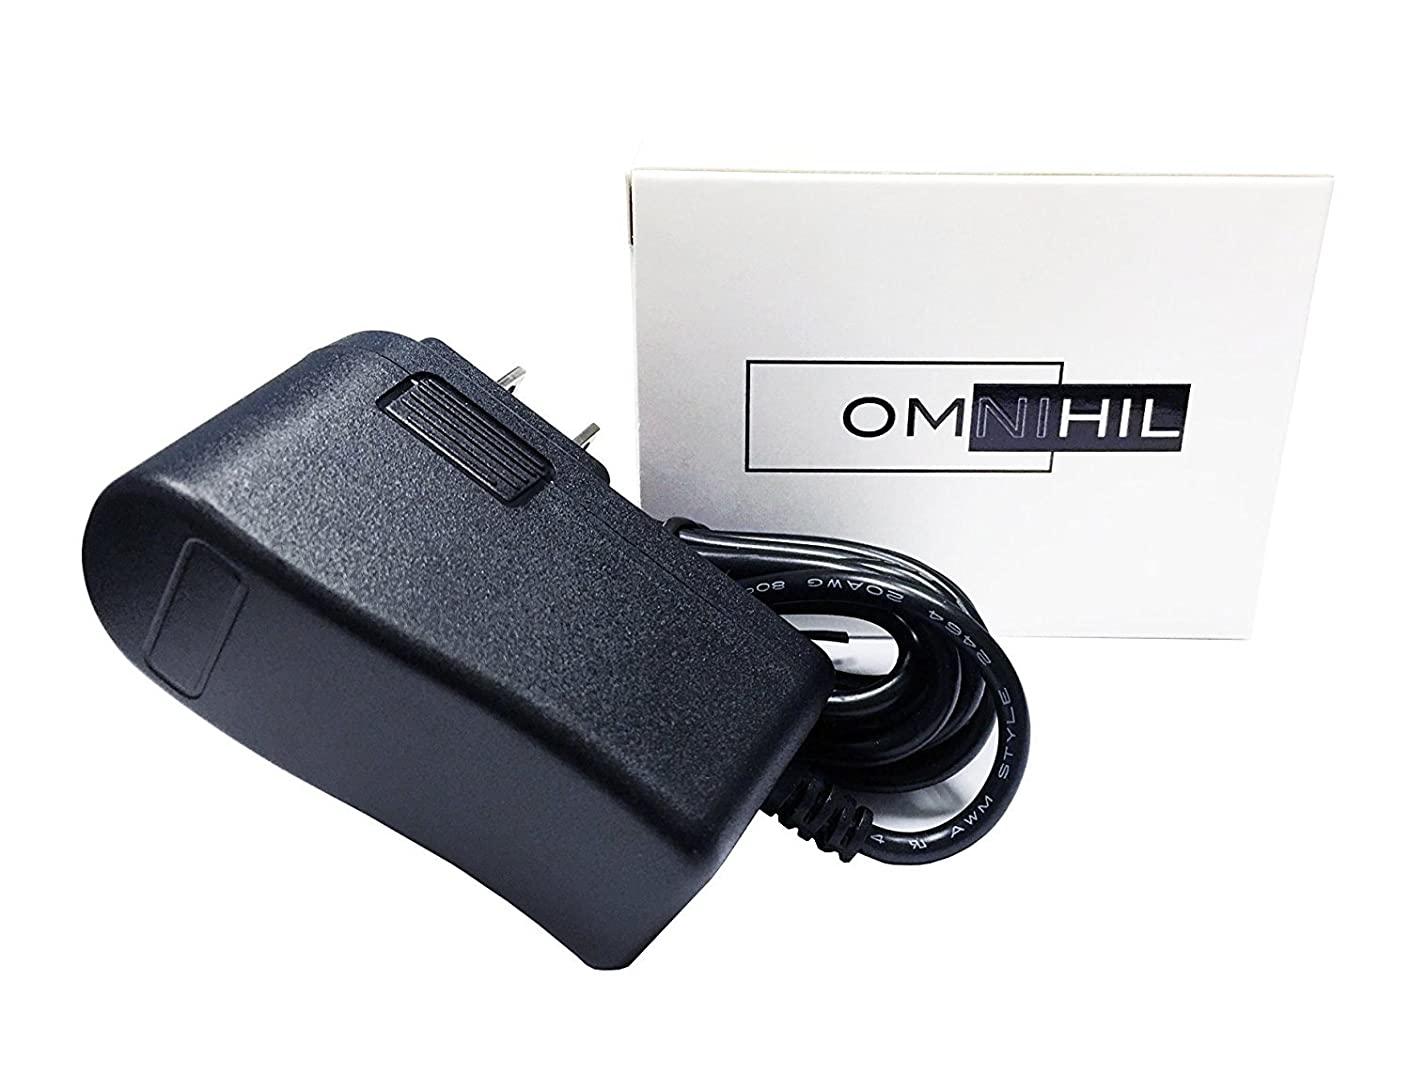 [8 FT]?OMNIHIL AC/DC Power Adapter 9V 1.5A (1500mA) 5.5x2.1mm Compatible with Schwinn 250 Recumbent Bike